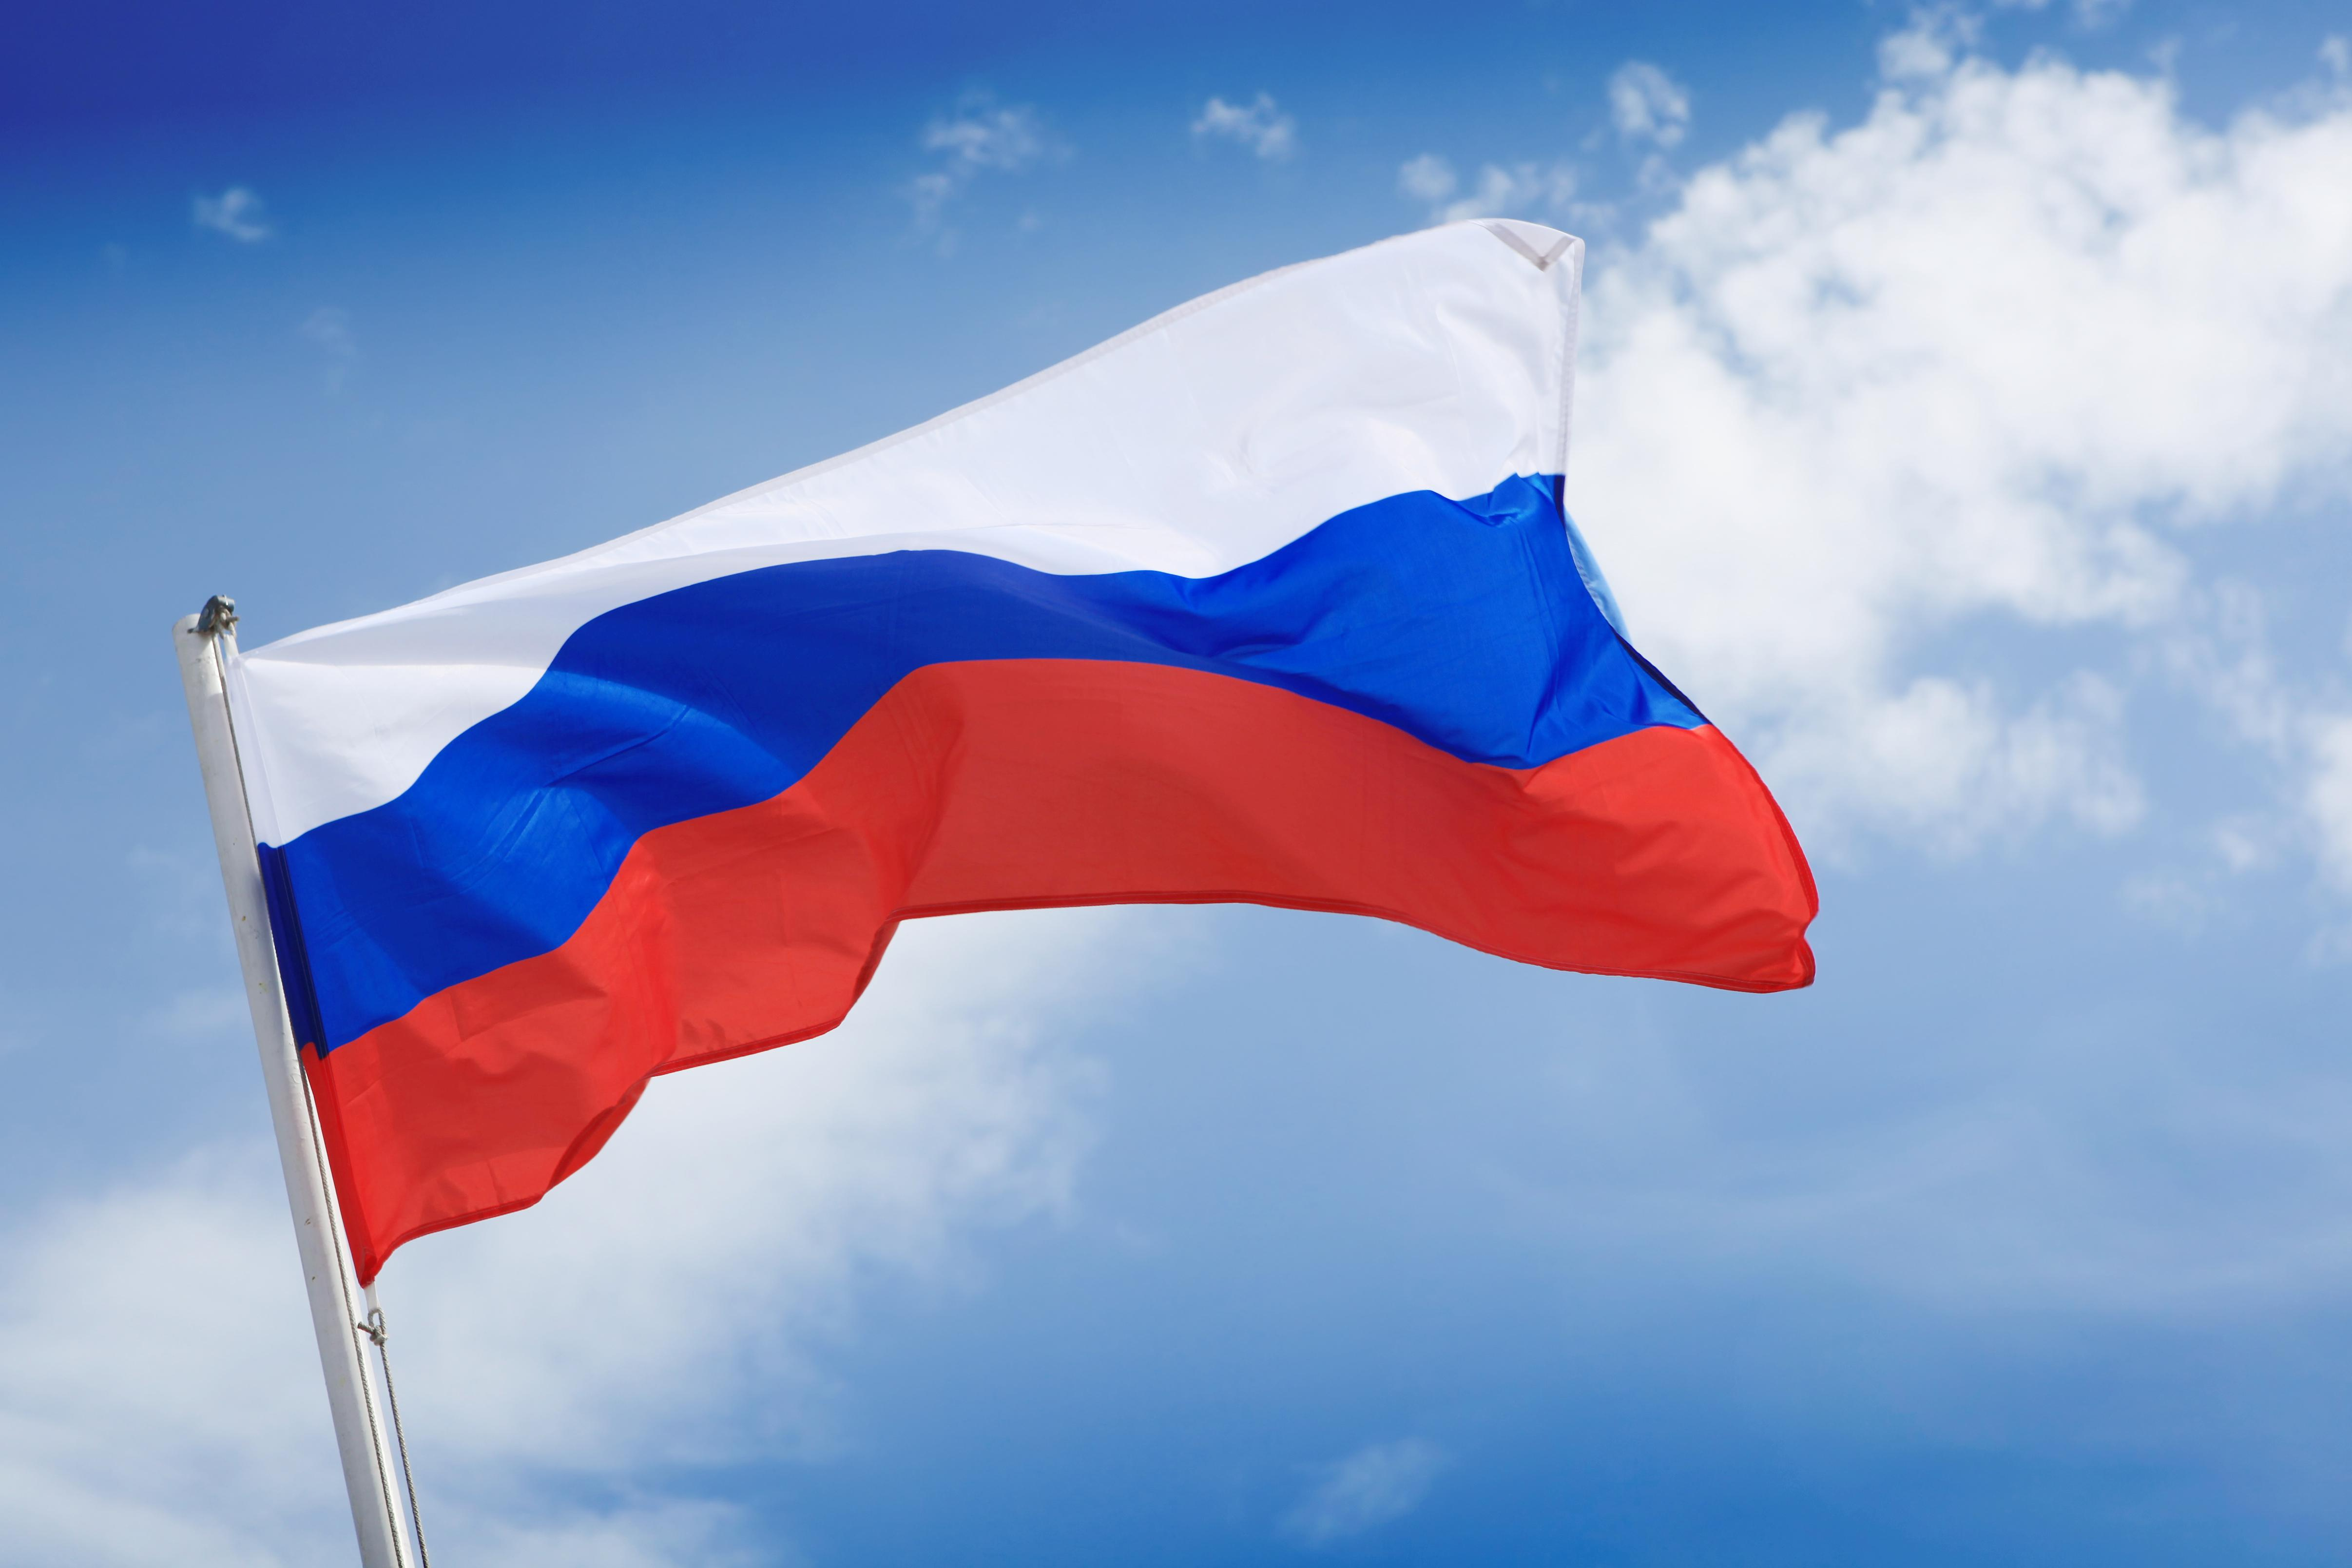 Photo of the Russian flag and a blue sky with clouds